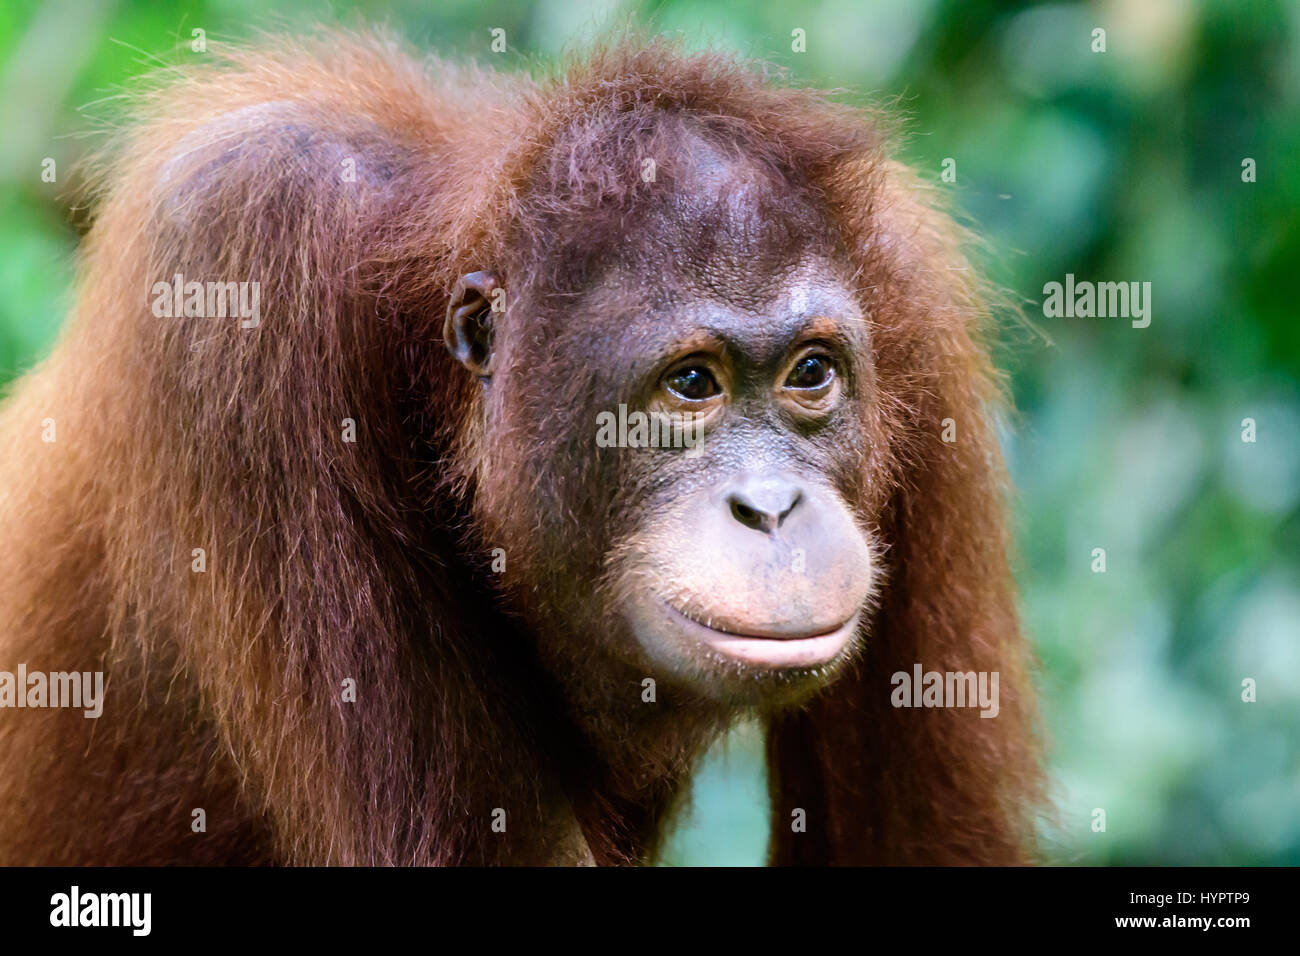 Le visage d'un orang Photo Stock